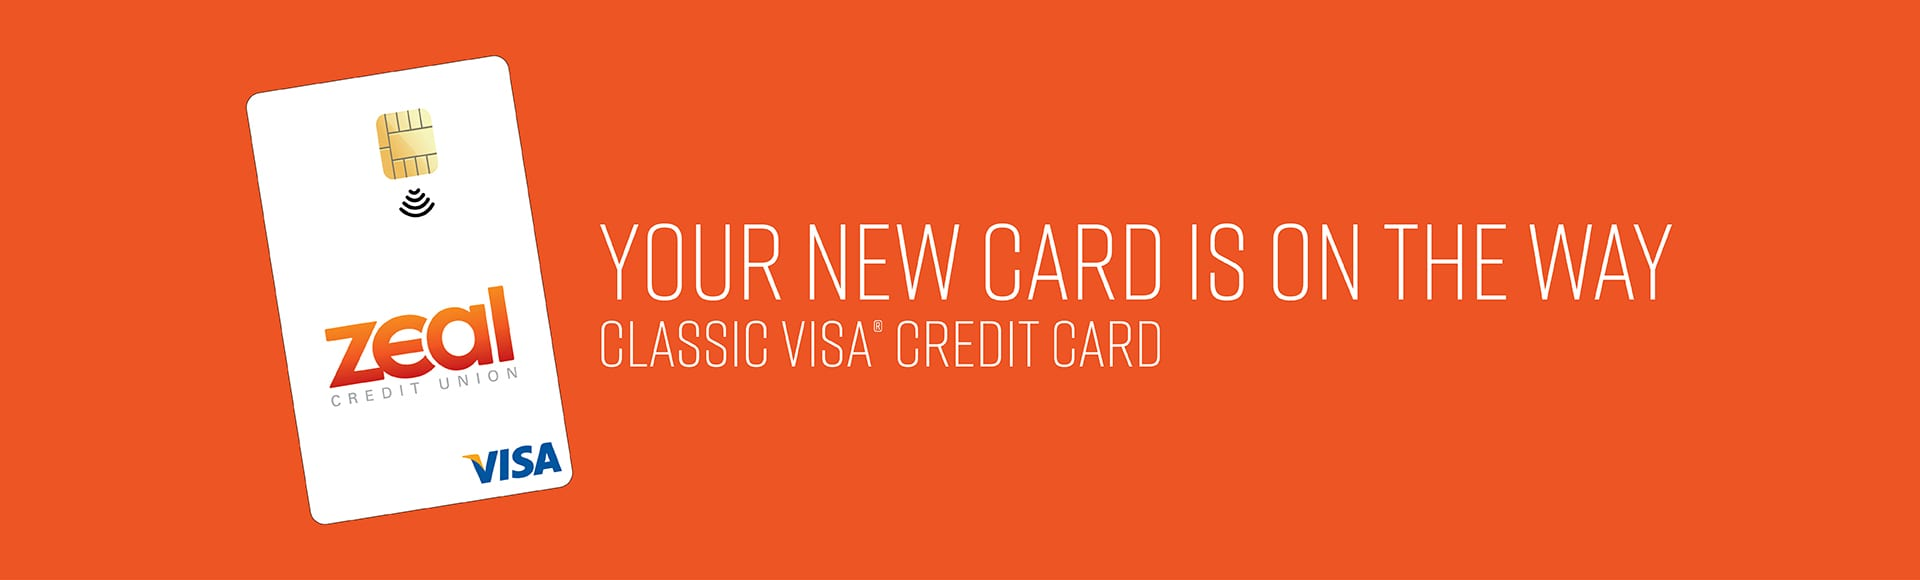 Visa Platinum Credit Card on grey background with writing